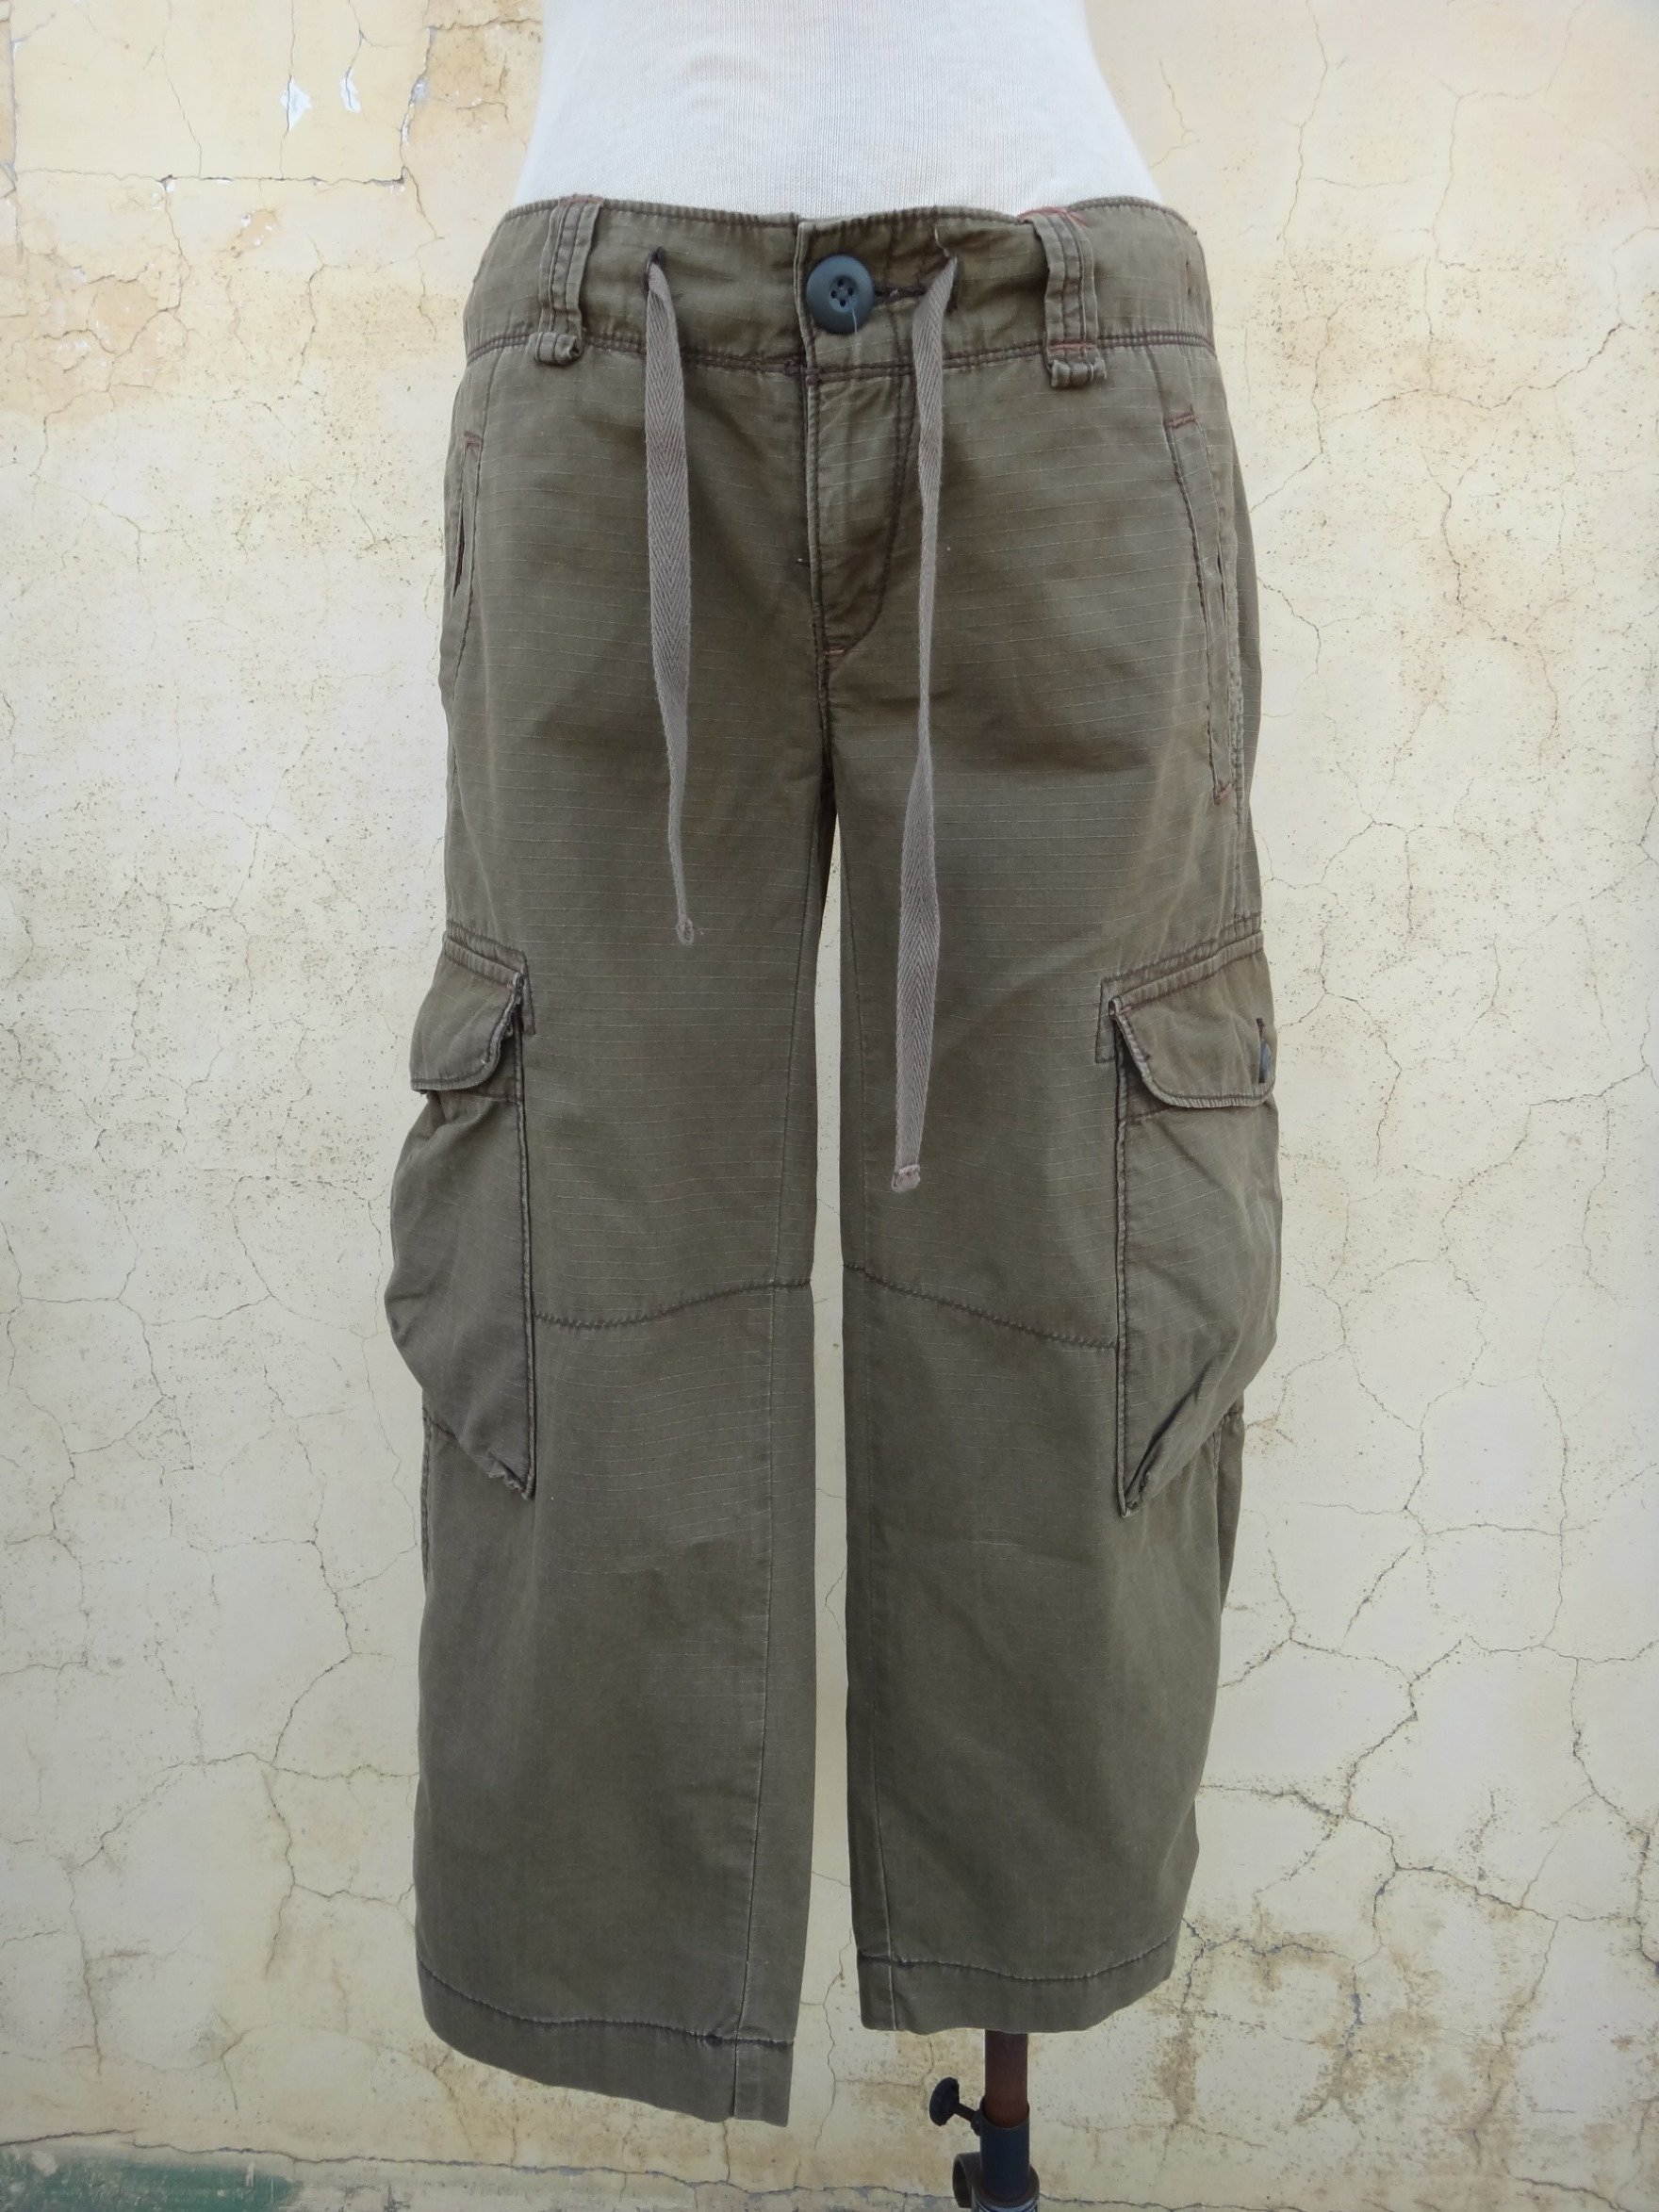 jacob00765100 ~ 正品 RALPH LAUREN POLO JEANS CO. 軍綠色 多口袋 八分褲 s